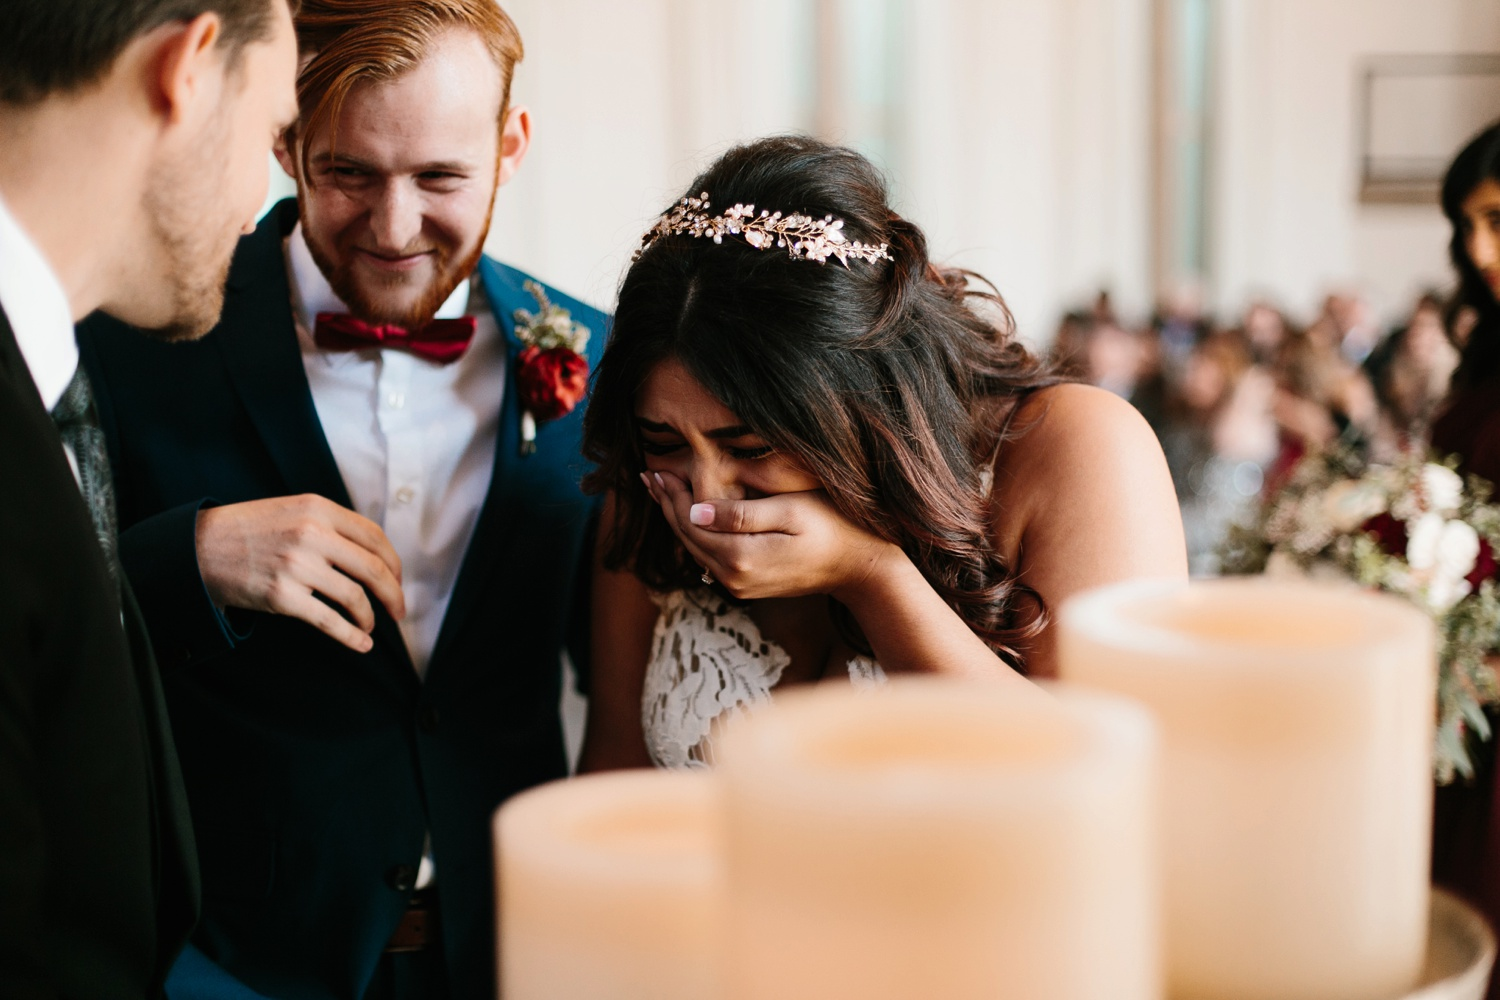 Grant + Lysette | a vibrant, deep burgundy and navy, and mixed metals wedding at Hidden Pines Chapel by North Texas Wedding Photographer Rachel Meagan Photography 099